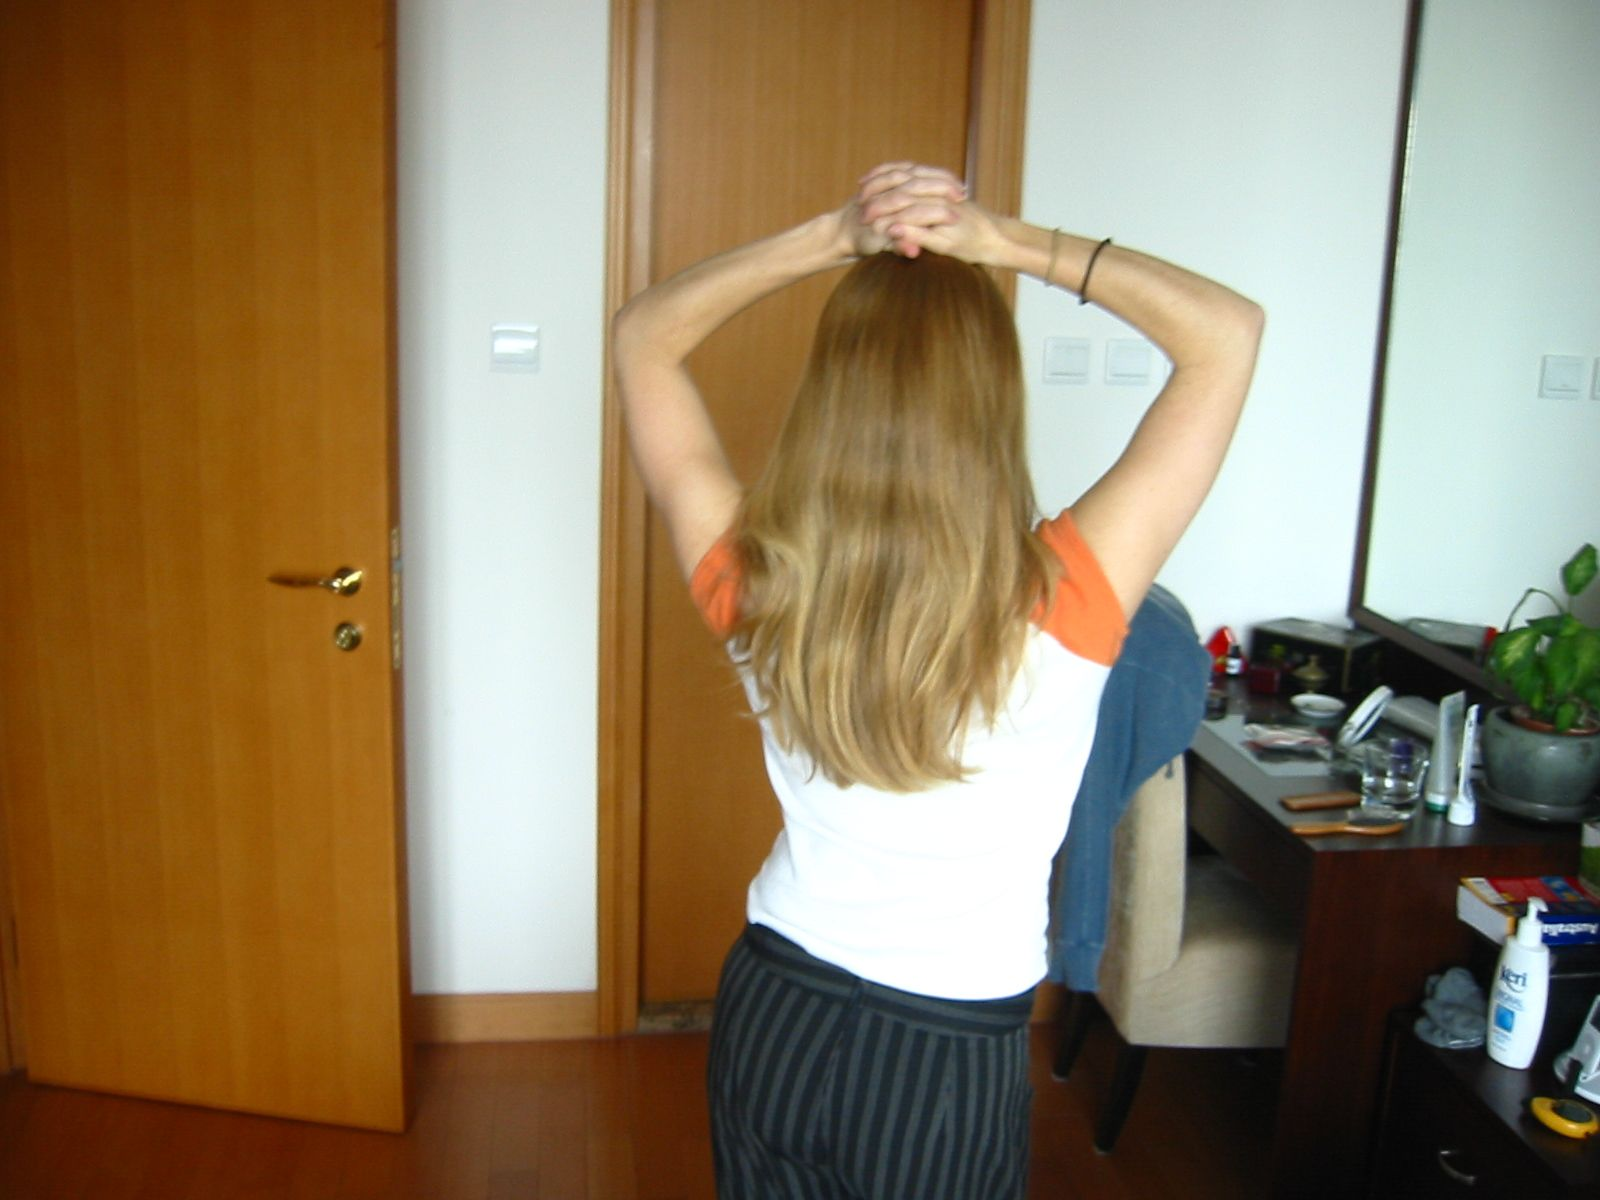 My hair before the experiment.